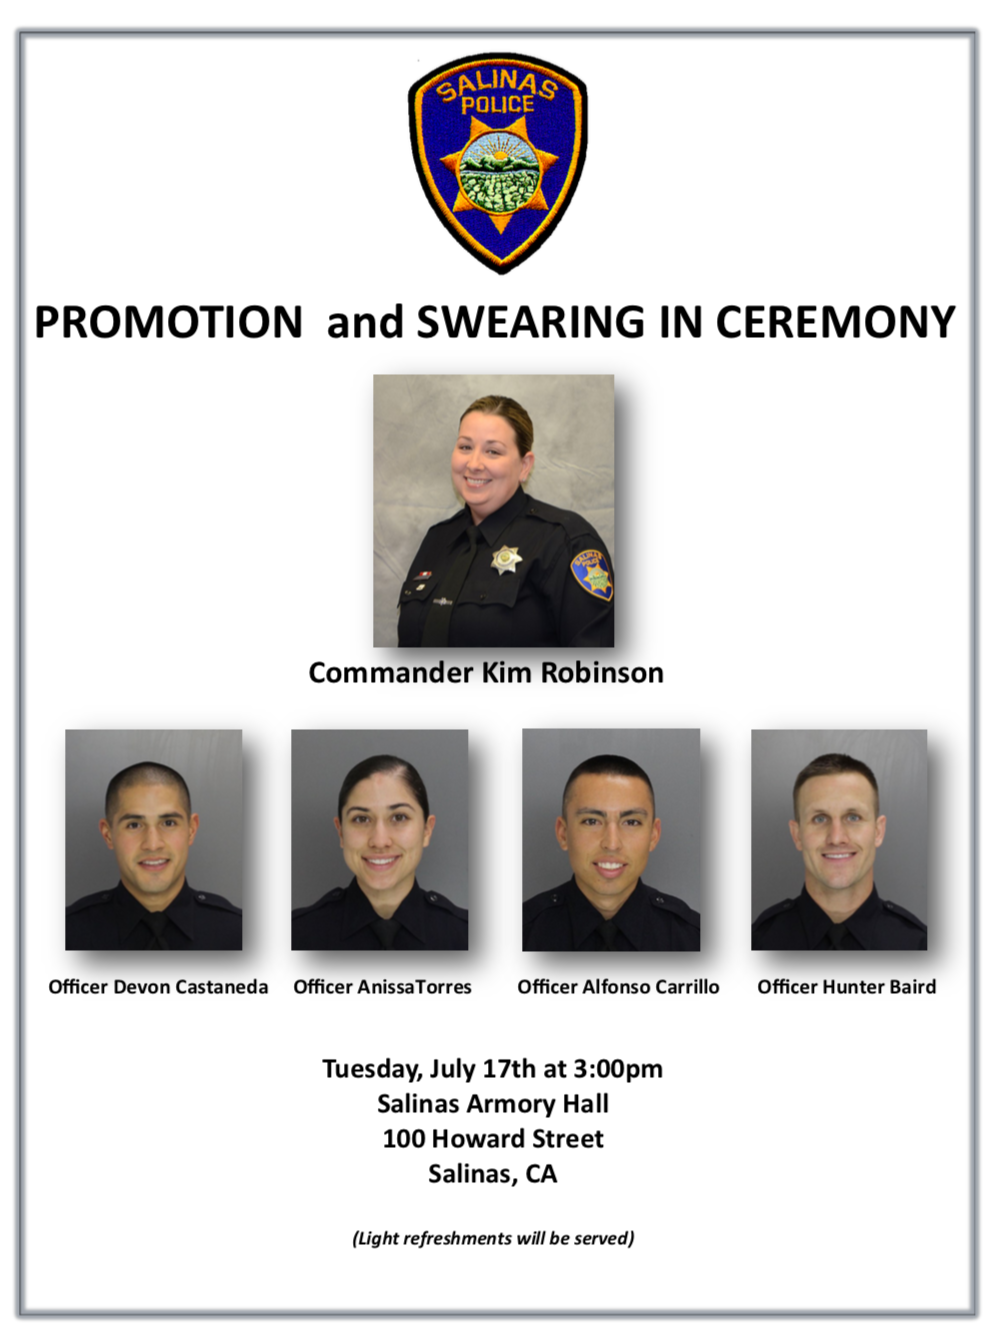 Congratulations to Commander Robinson and our four new officers. Please feel free to join us for the celebration at 3PM in the PAL building at 100 Howard St.